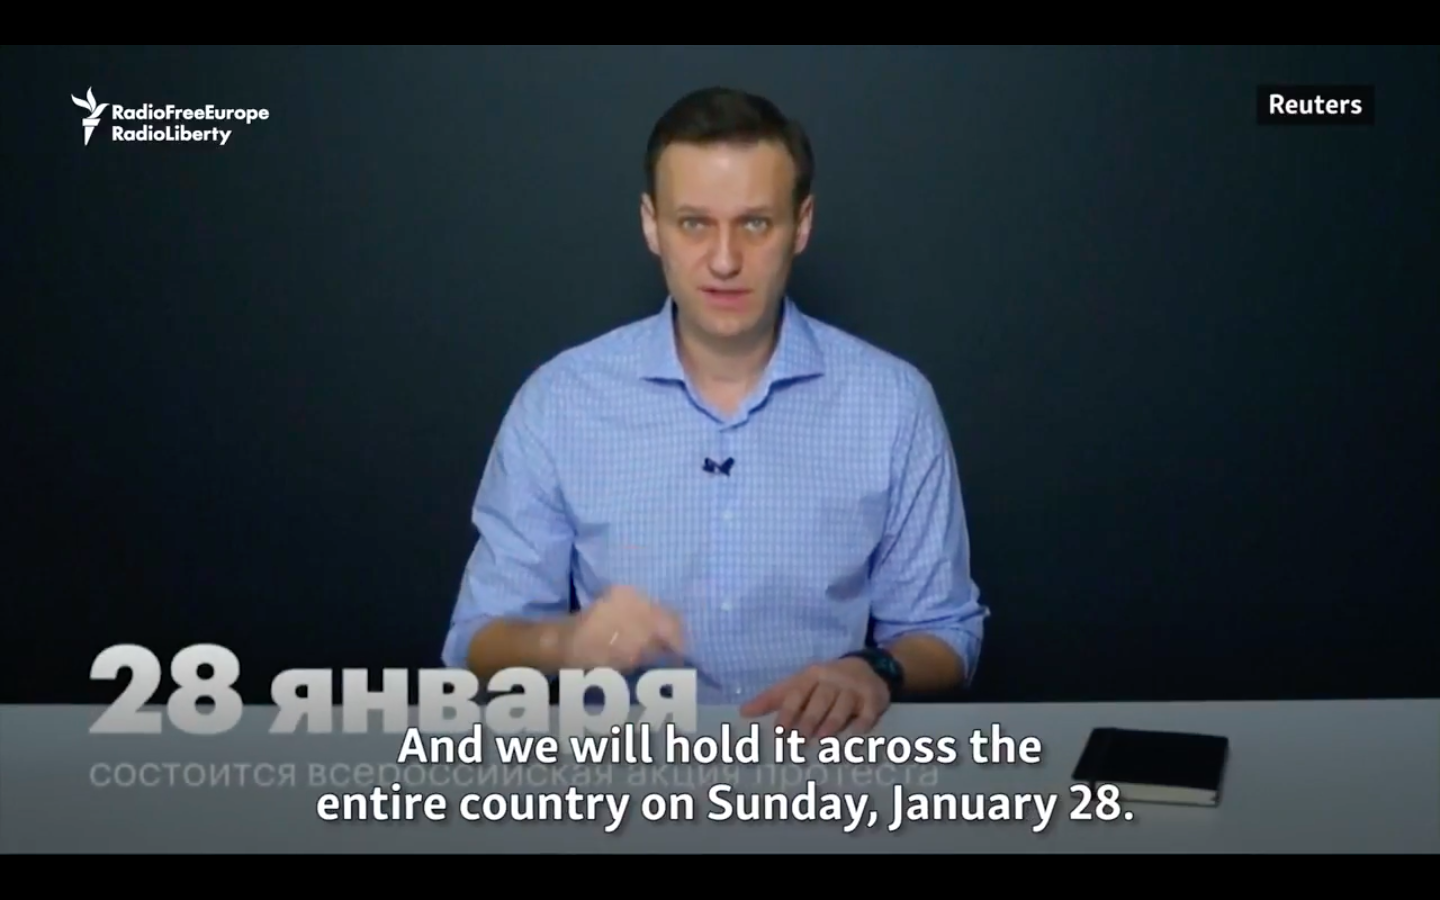 Russian Federation  court upholds Navalny presidential election ban